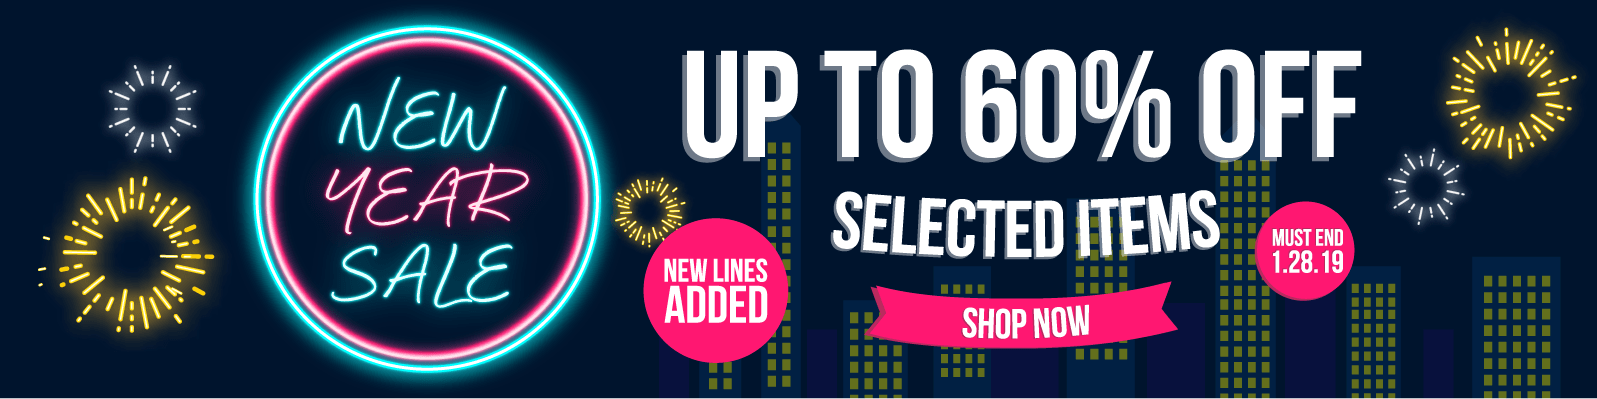 New Year Sale Up to 60% off selected items Must End 1.28.19 (NEW LINES ADDED)